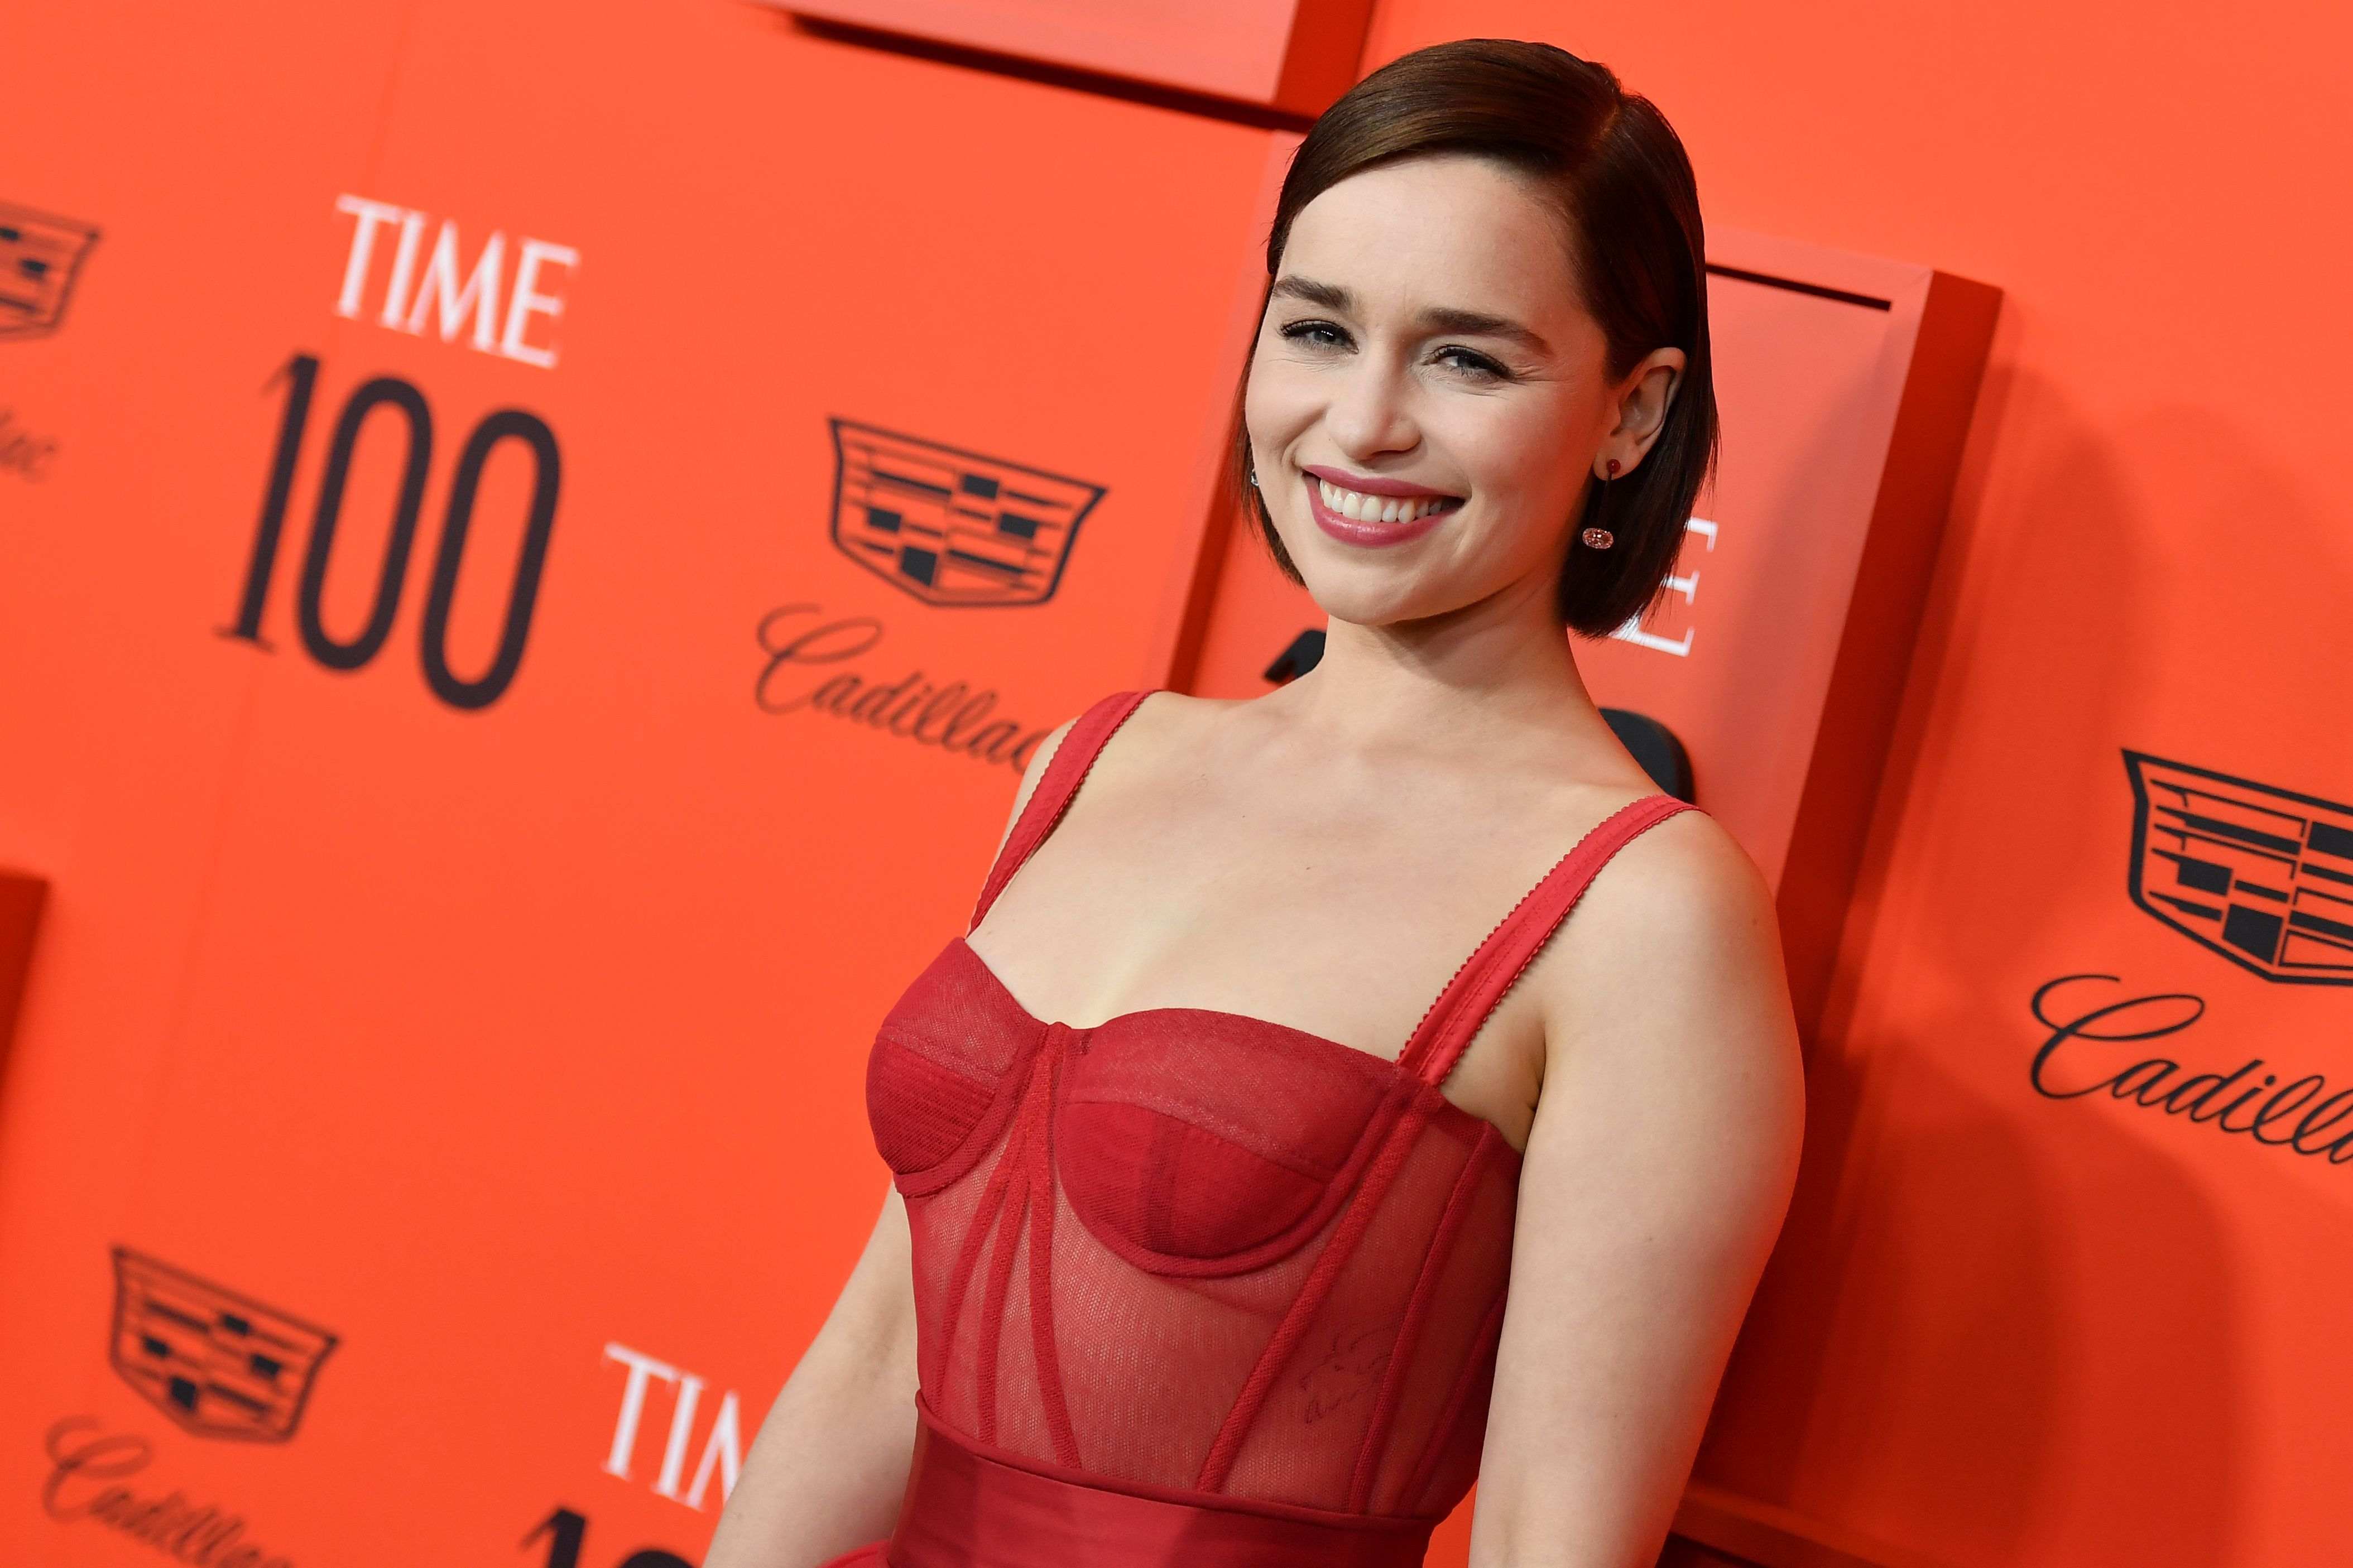 Emilia Clarke Turned Down 'Fifty Shades Of Grey' For The Most Feminist Reason